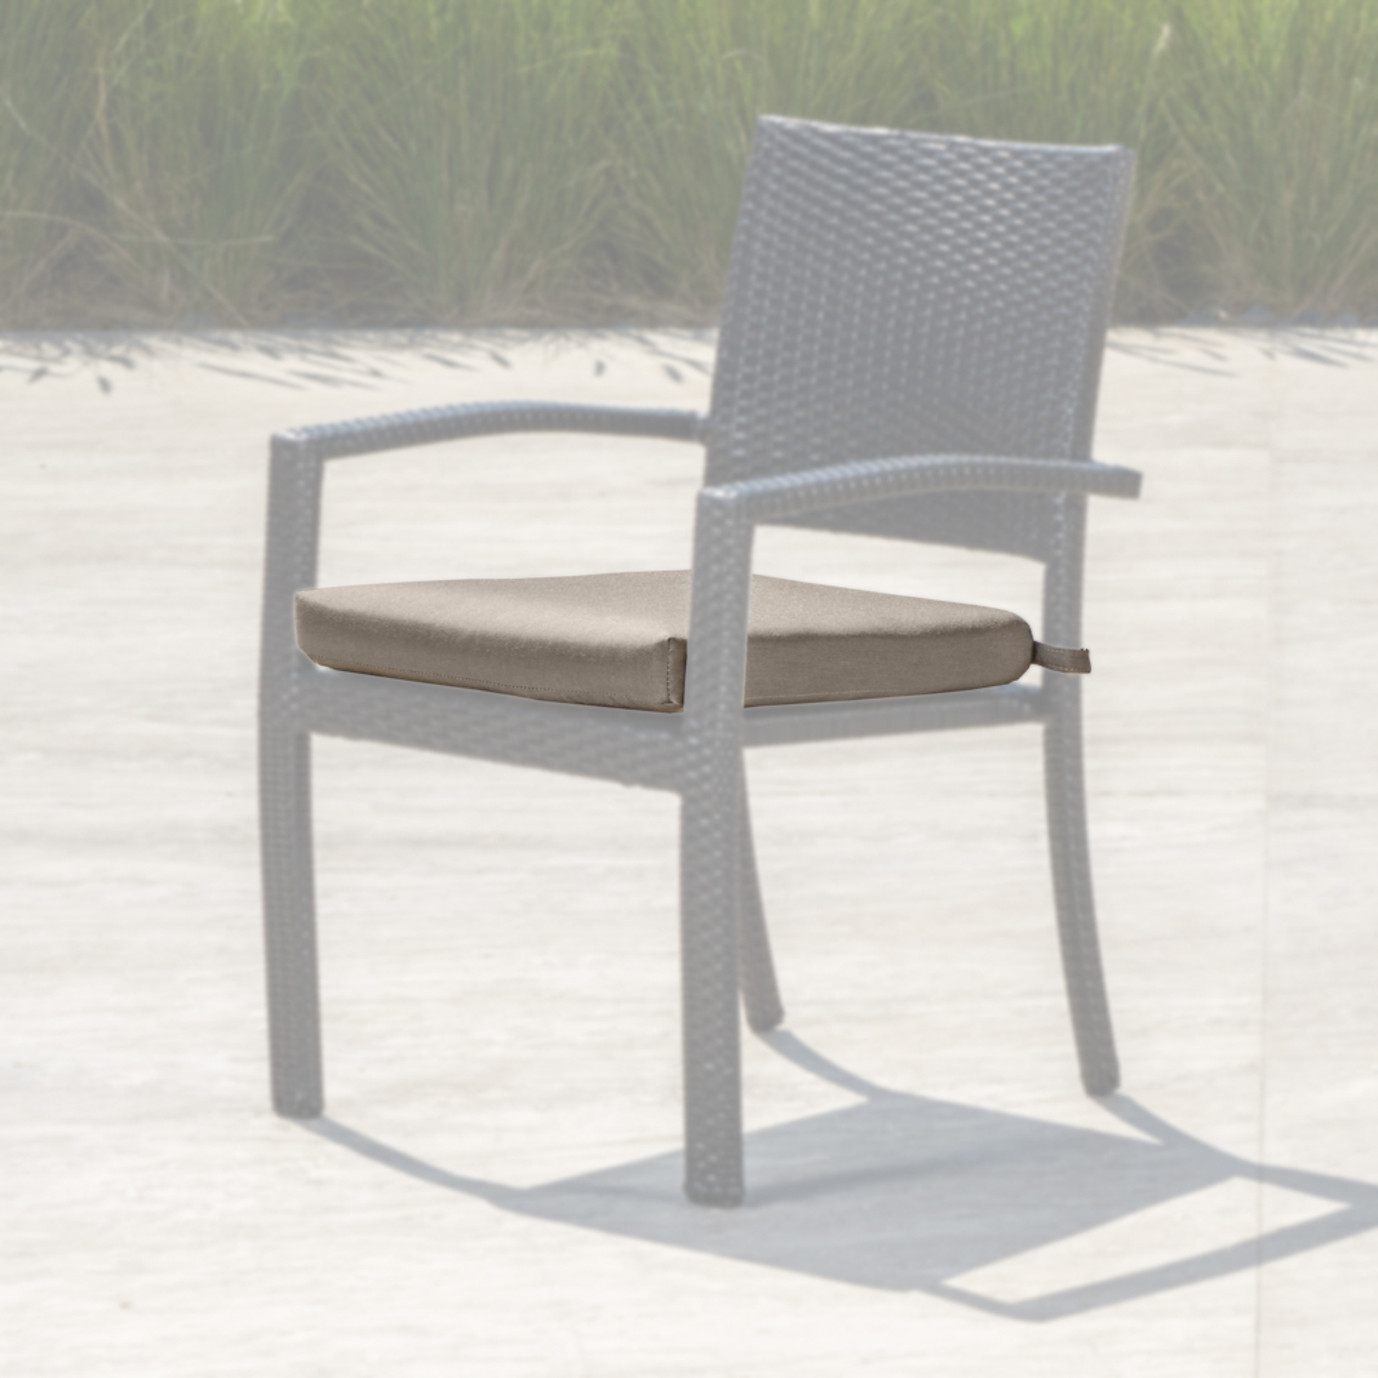 Portofino Comfort Dining Chair Cushion - Taupe Mist